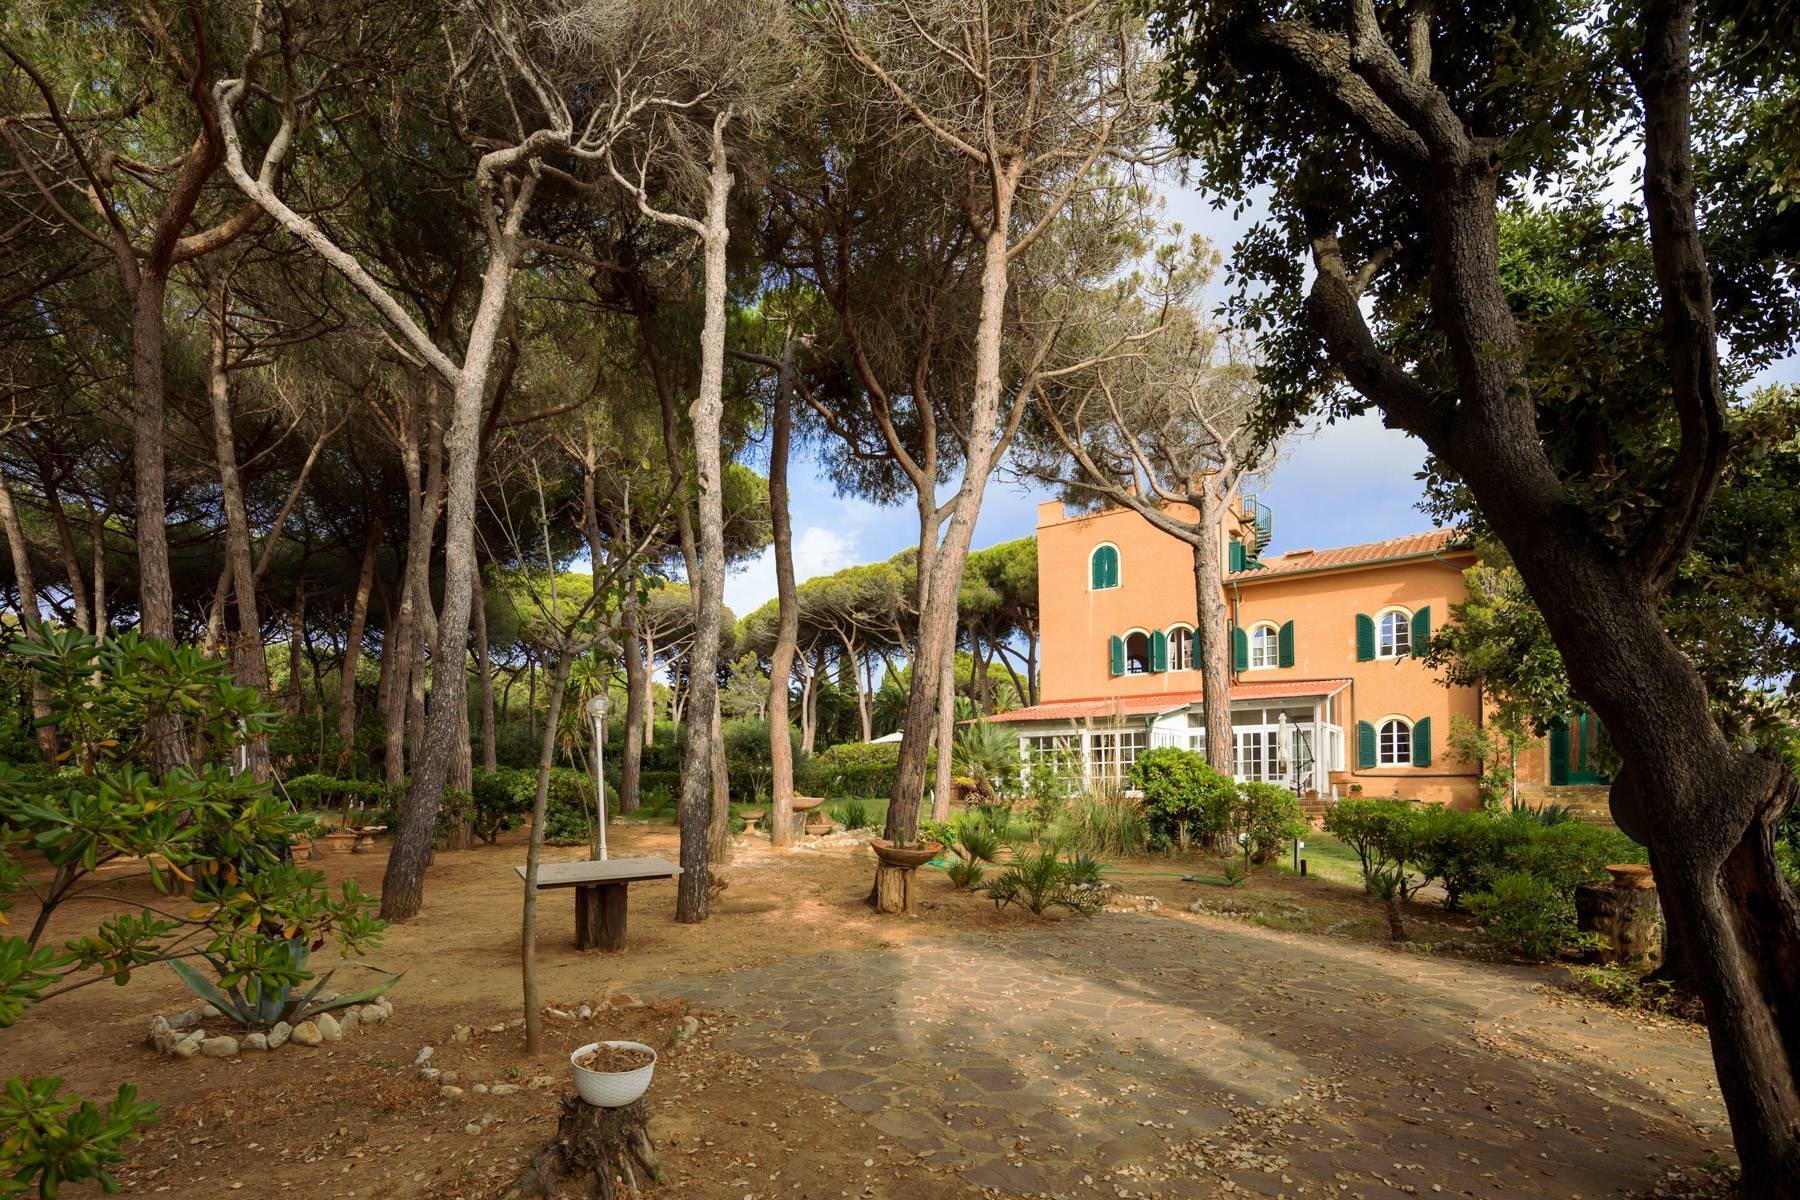 Apartment with private garden and access to the sea in a historic villa - 11